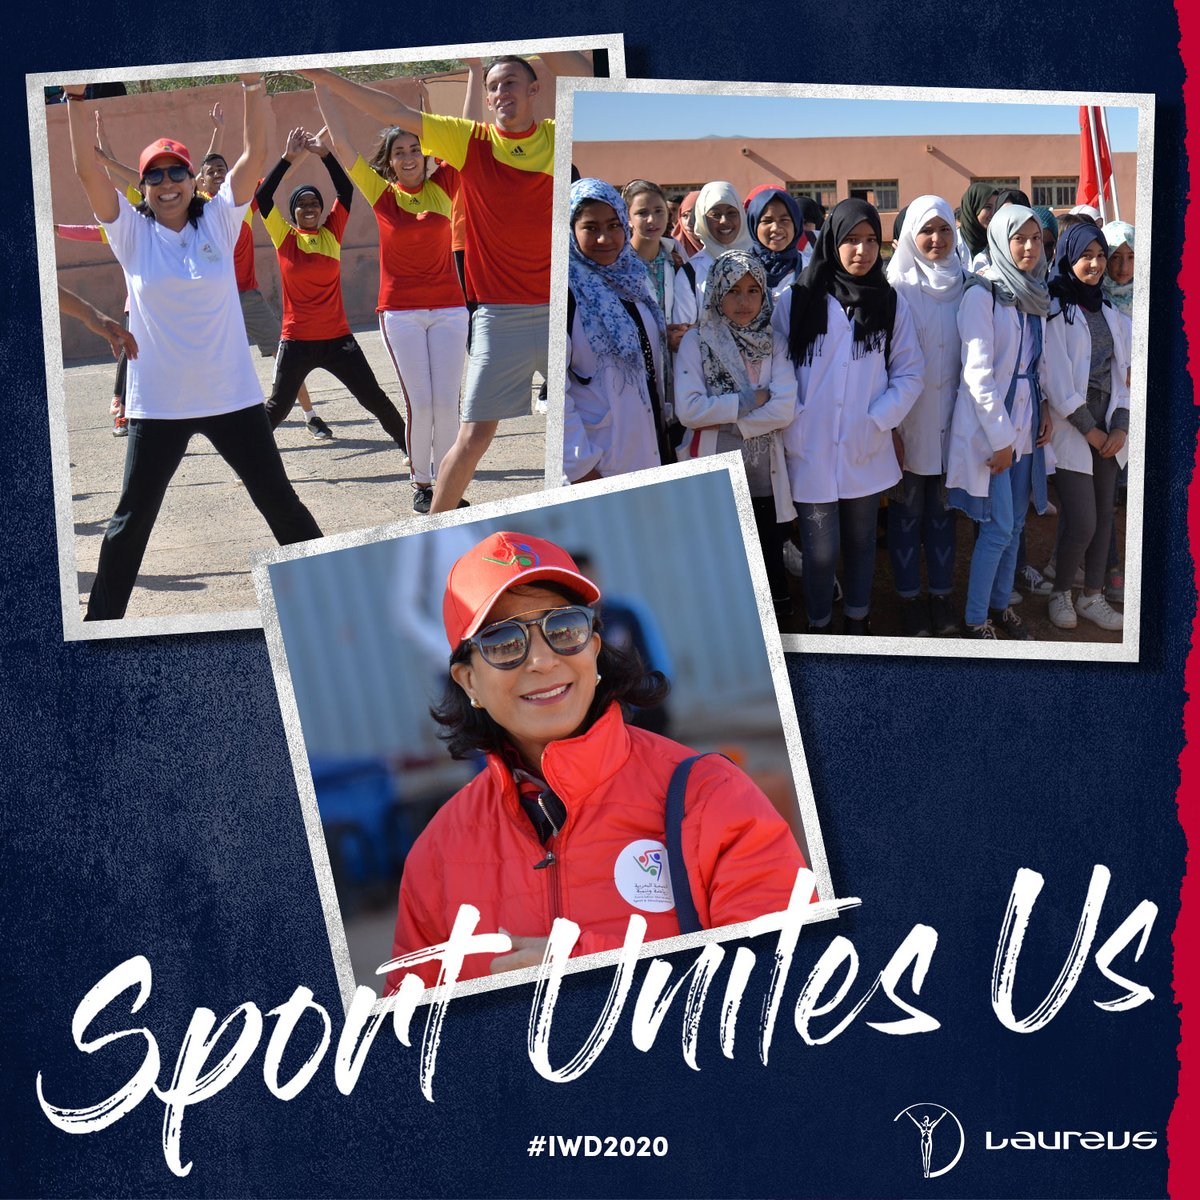 Laureus Academy Member Nawal El Moutawakel joined the President of the Moroccan Sports Development Association to lead a humanitarian caravan from Casablanca to isolated, underprivileged communities in the mountains of Morocco 🇲🇦  #SportUnitesUs #IWD2020